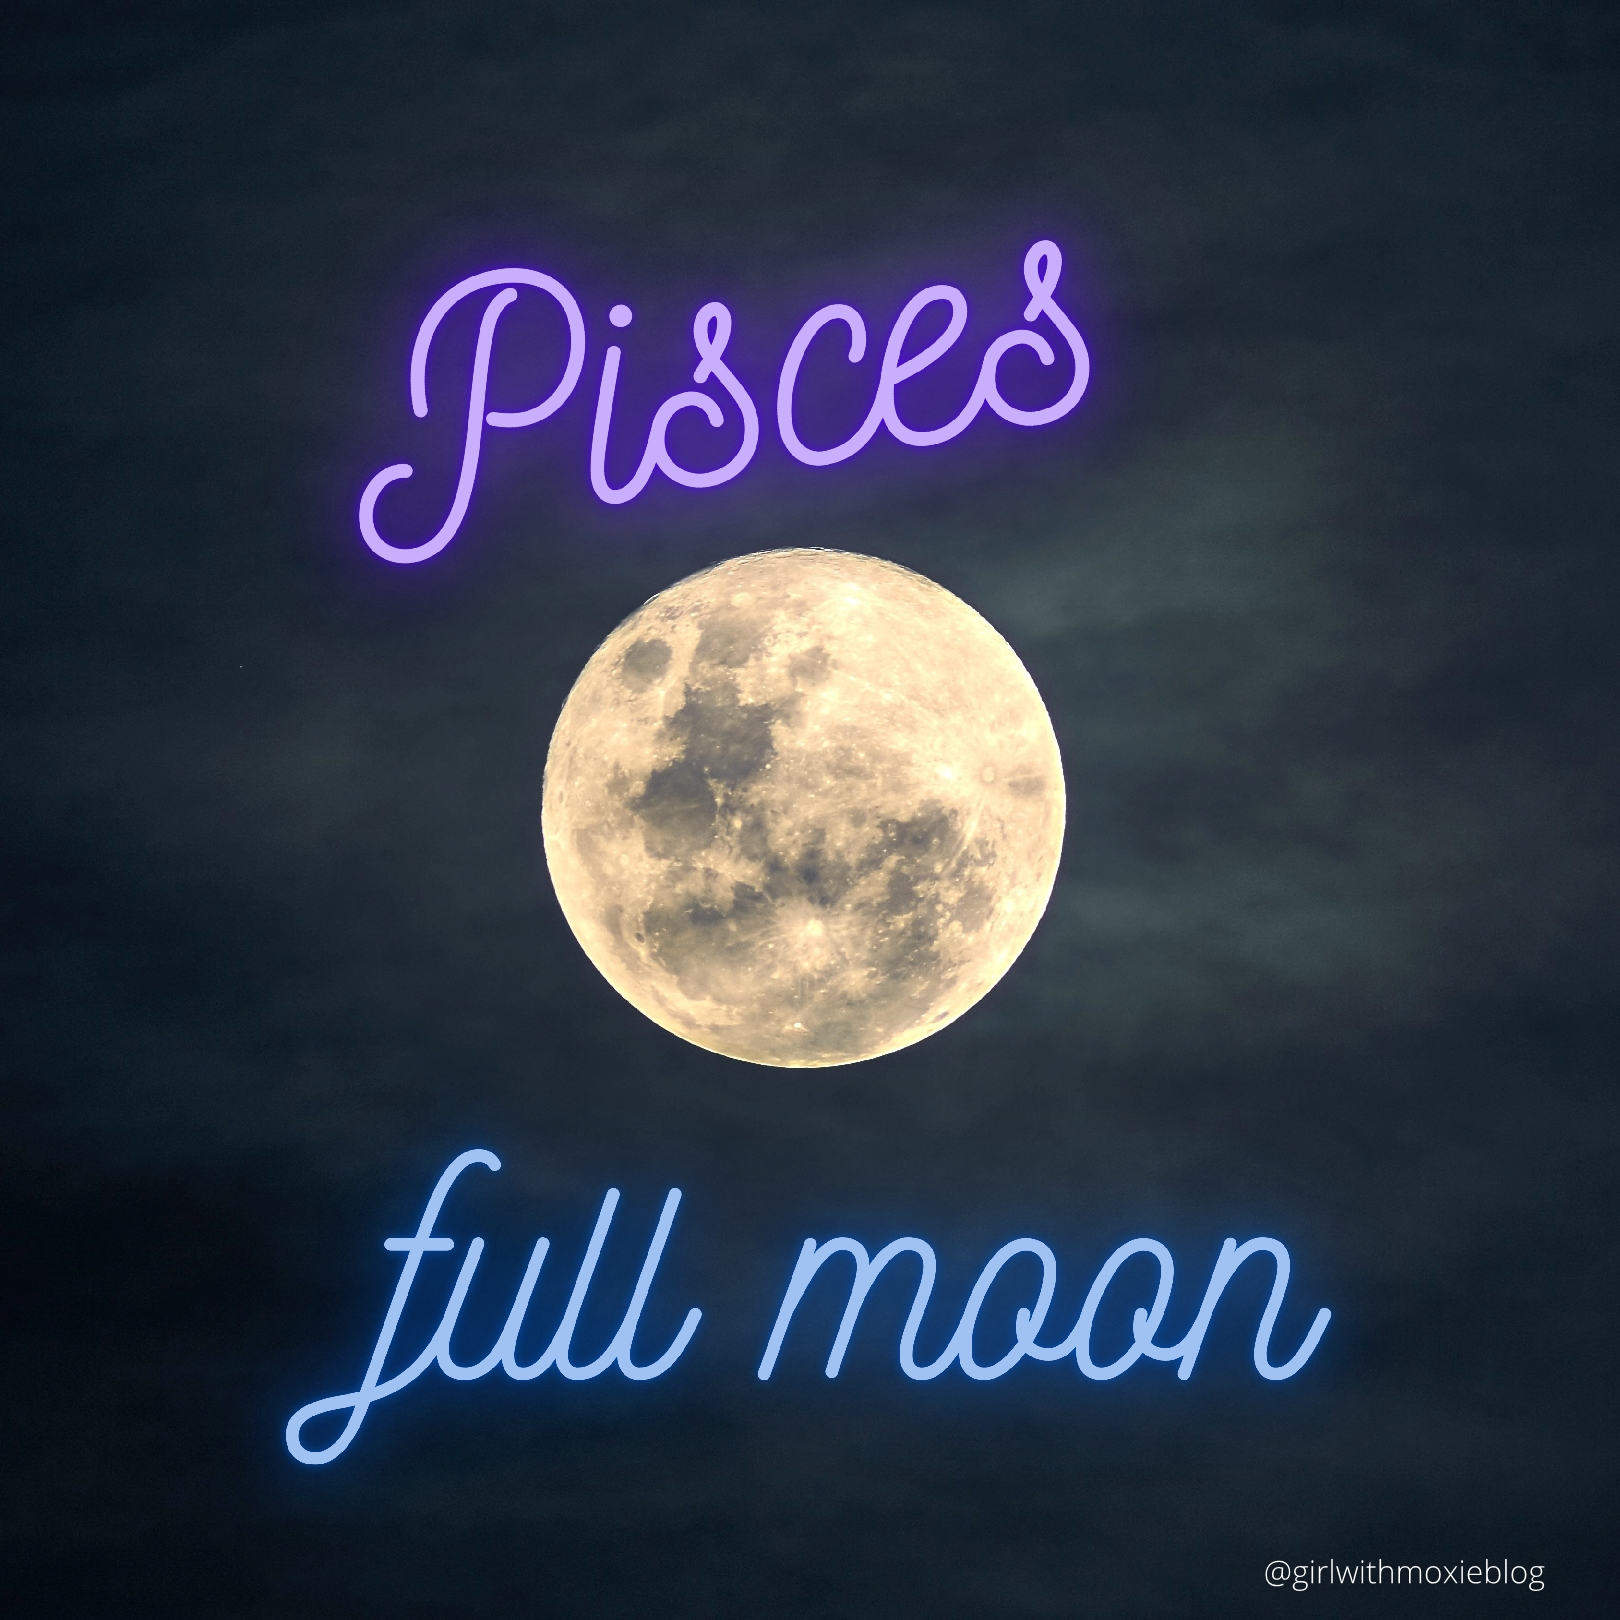 full moon in pisces, pisces full moon, full moon, pisces, moon cycles, moon